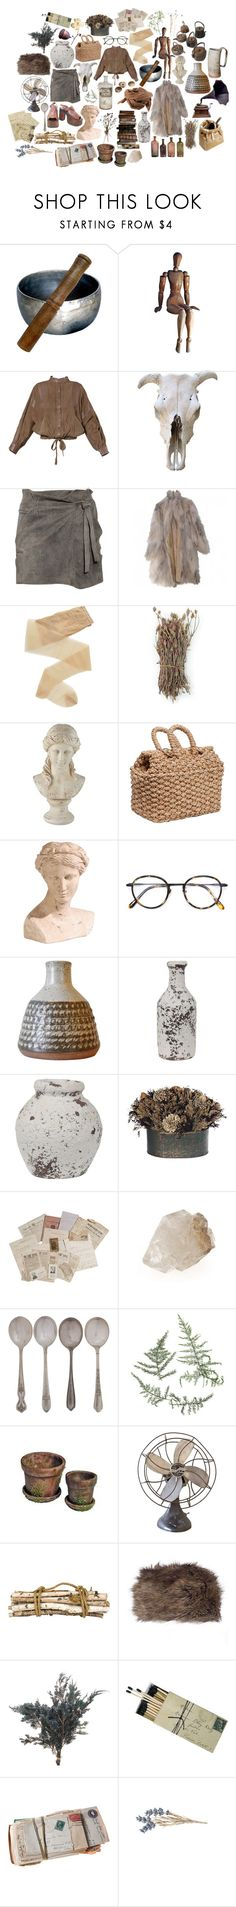 """I Can't See Your Face In My Mind"" by powerjazz ❤ liked on Polyvore featuring Valentino, IRO, Fogal, Bruuns Bazaar, Universal Lighting and Decor, Pigeon & Poodle, Ethan Allen, Frency & Mercury, Victrola and Jayson Home"